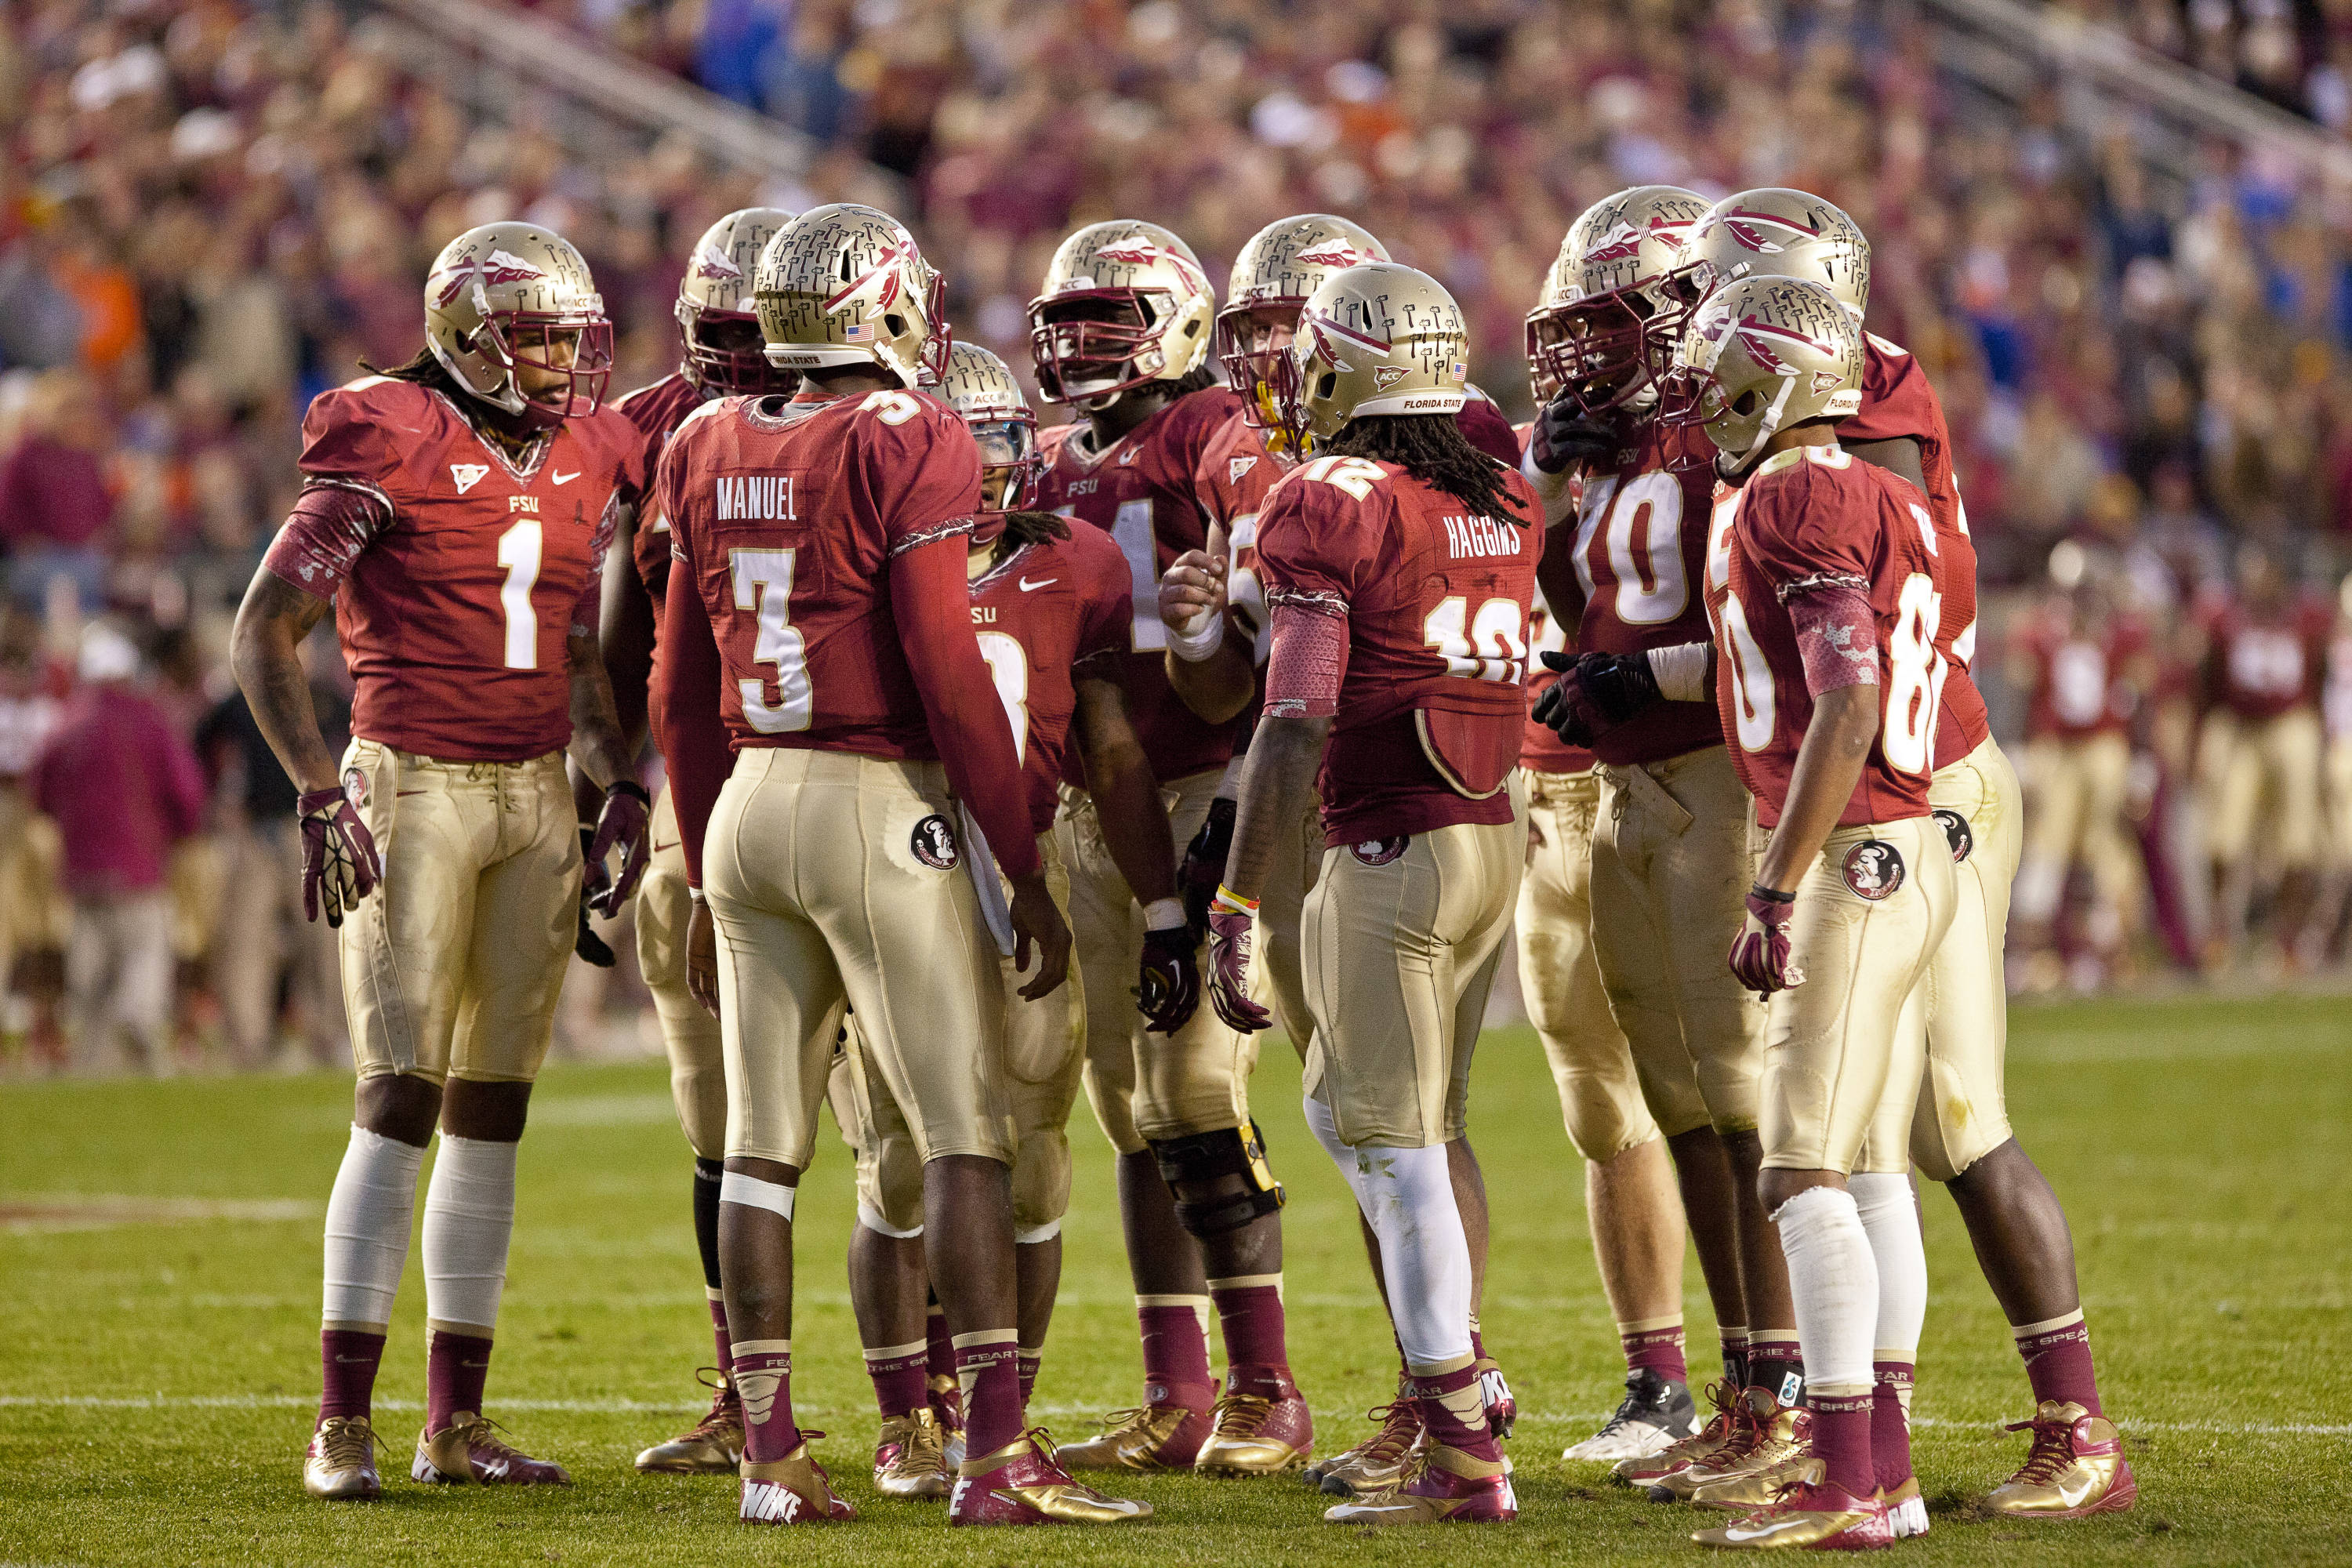 The 'Noles huddle during FSU Football's game against UF on Saturday, November 24, 2012 in Tallahassee, Fla.